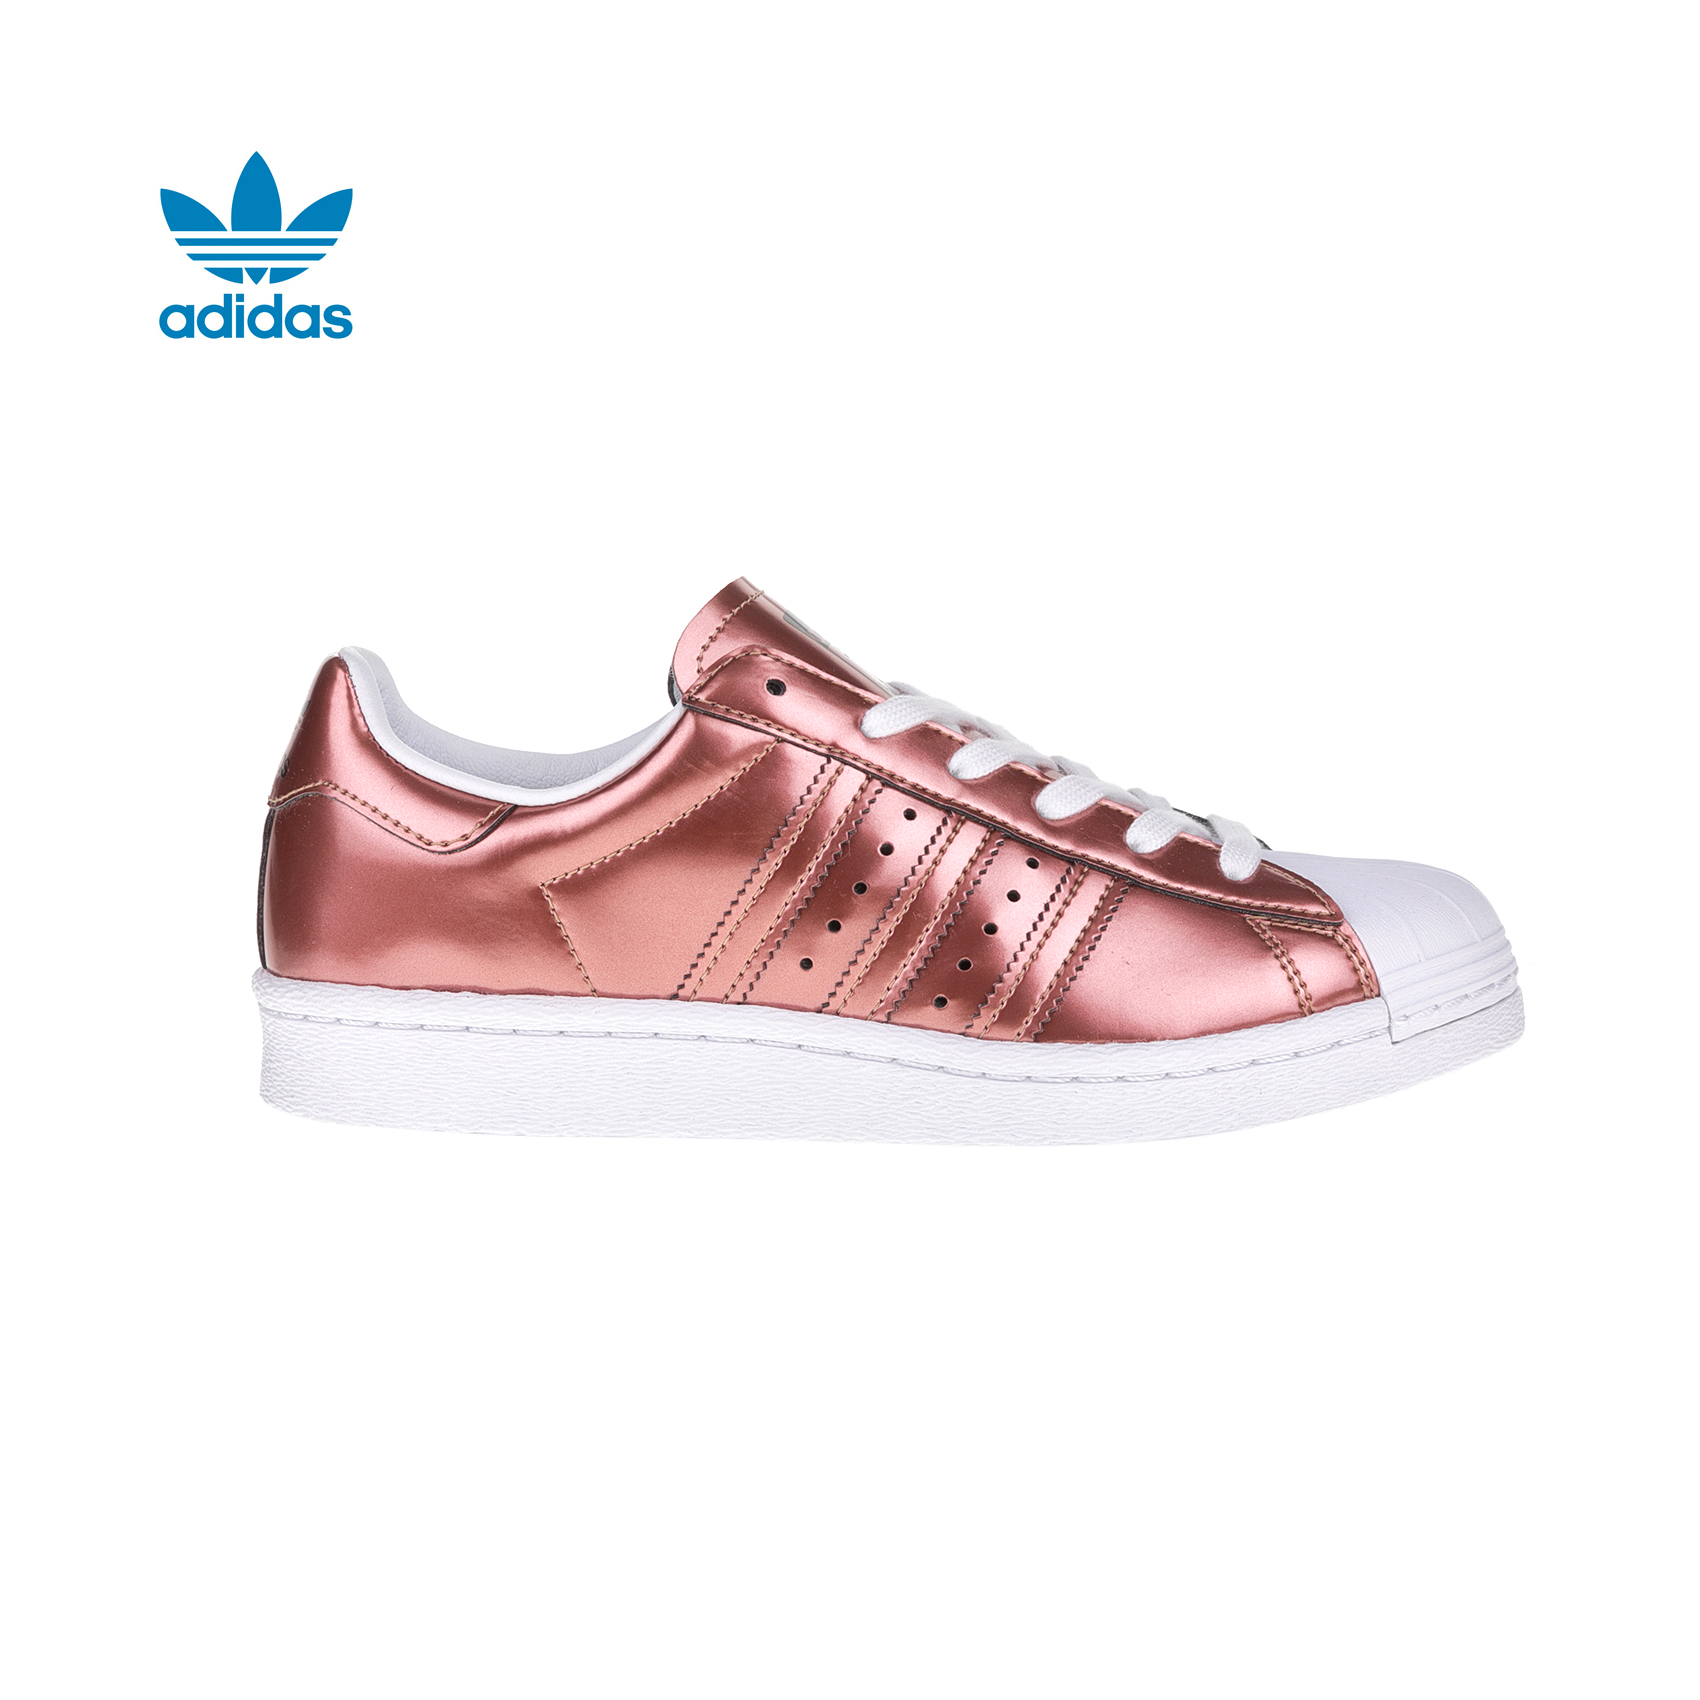 adidas Originals – Γυναικεία sneakers adidas SUPERSTAR μεταλλικά